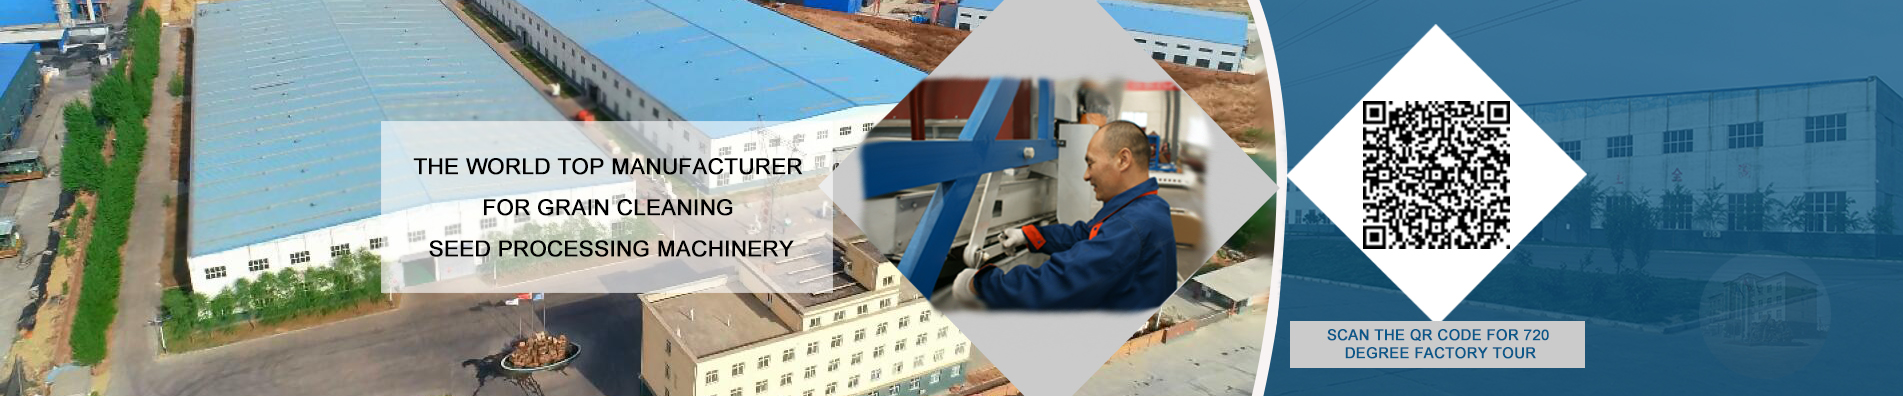 The world top manufacturer for grain cleaning & seed processing machinery